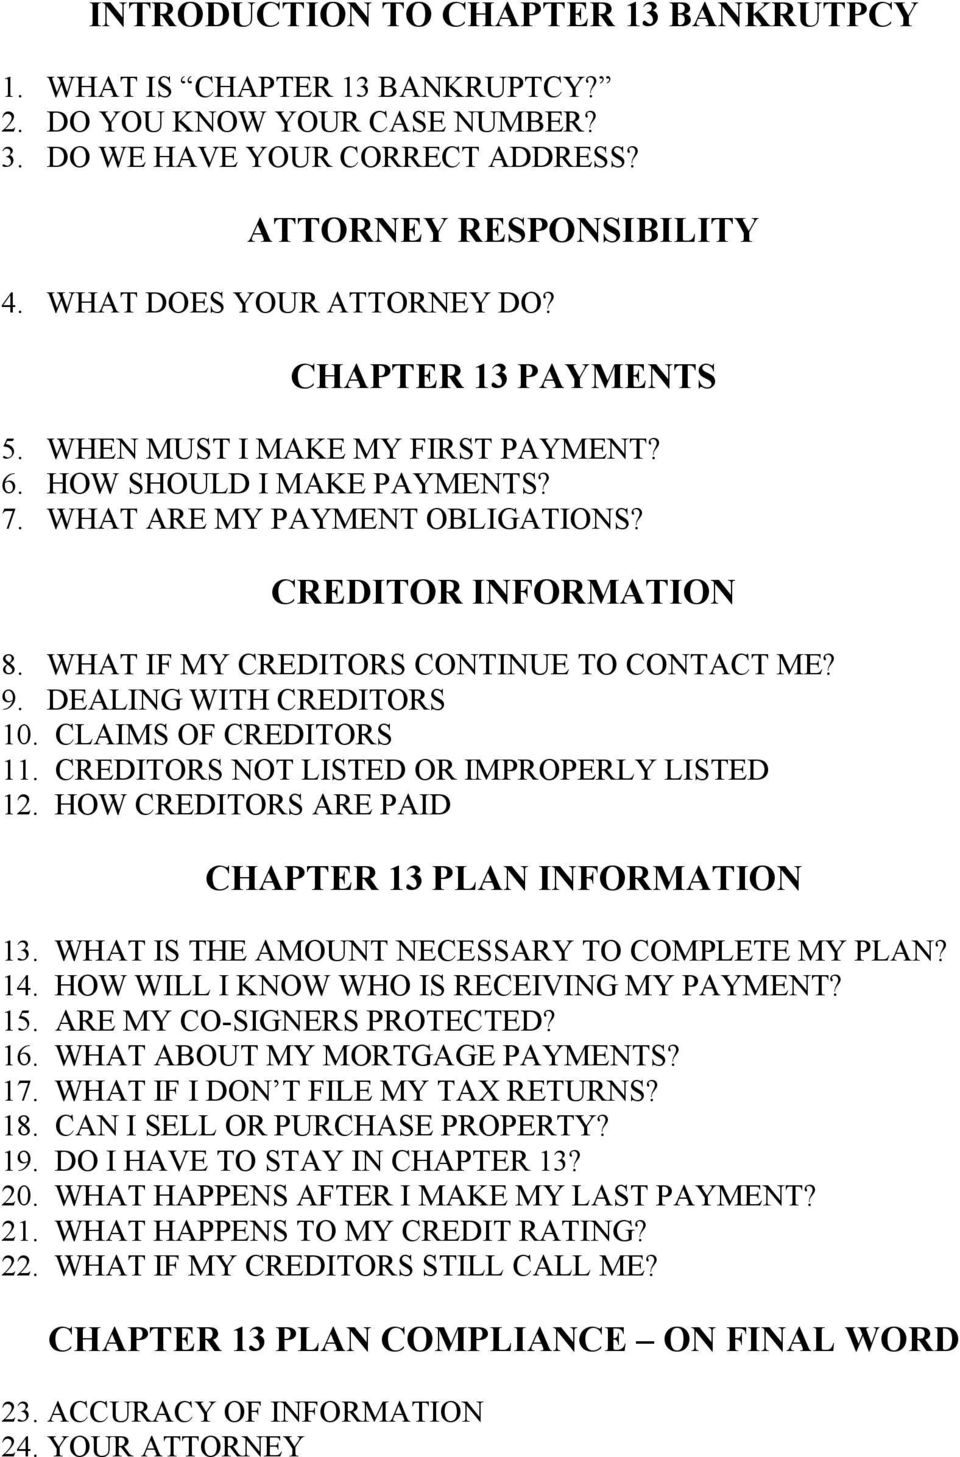 DEALING WITH CREDITORS 10. CLAIMS OF CREDITORS 11. CREDITORS NOT LISTED OR IMPROPERLY LISTED 12. HOW CREDITORS ARE PAID CHAPTER 13 PLAN INFORMATION 13.